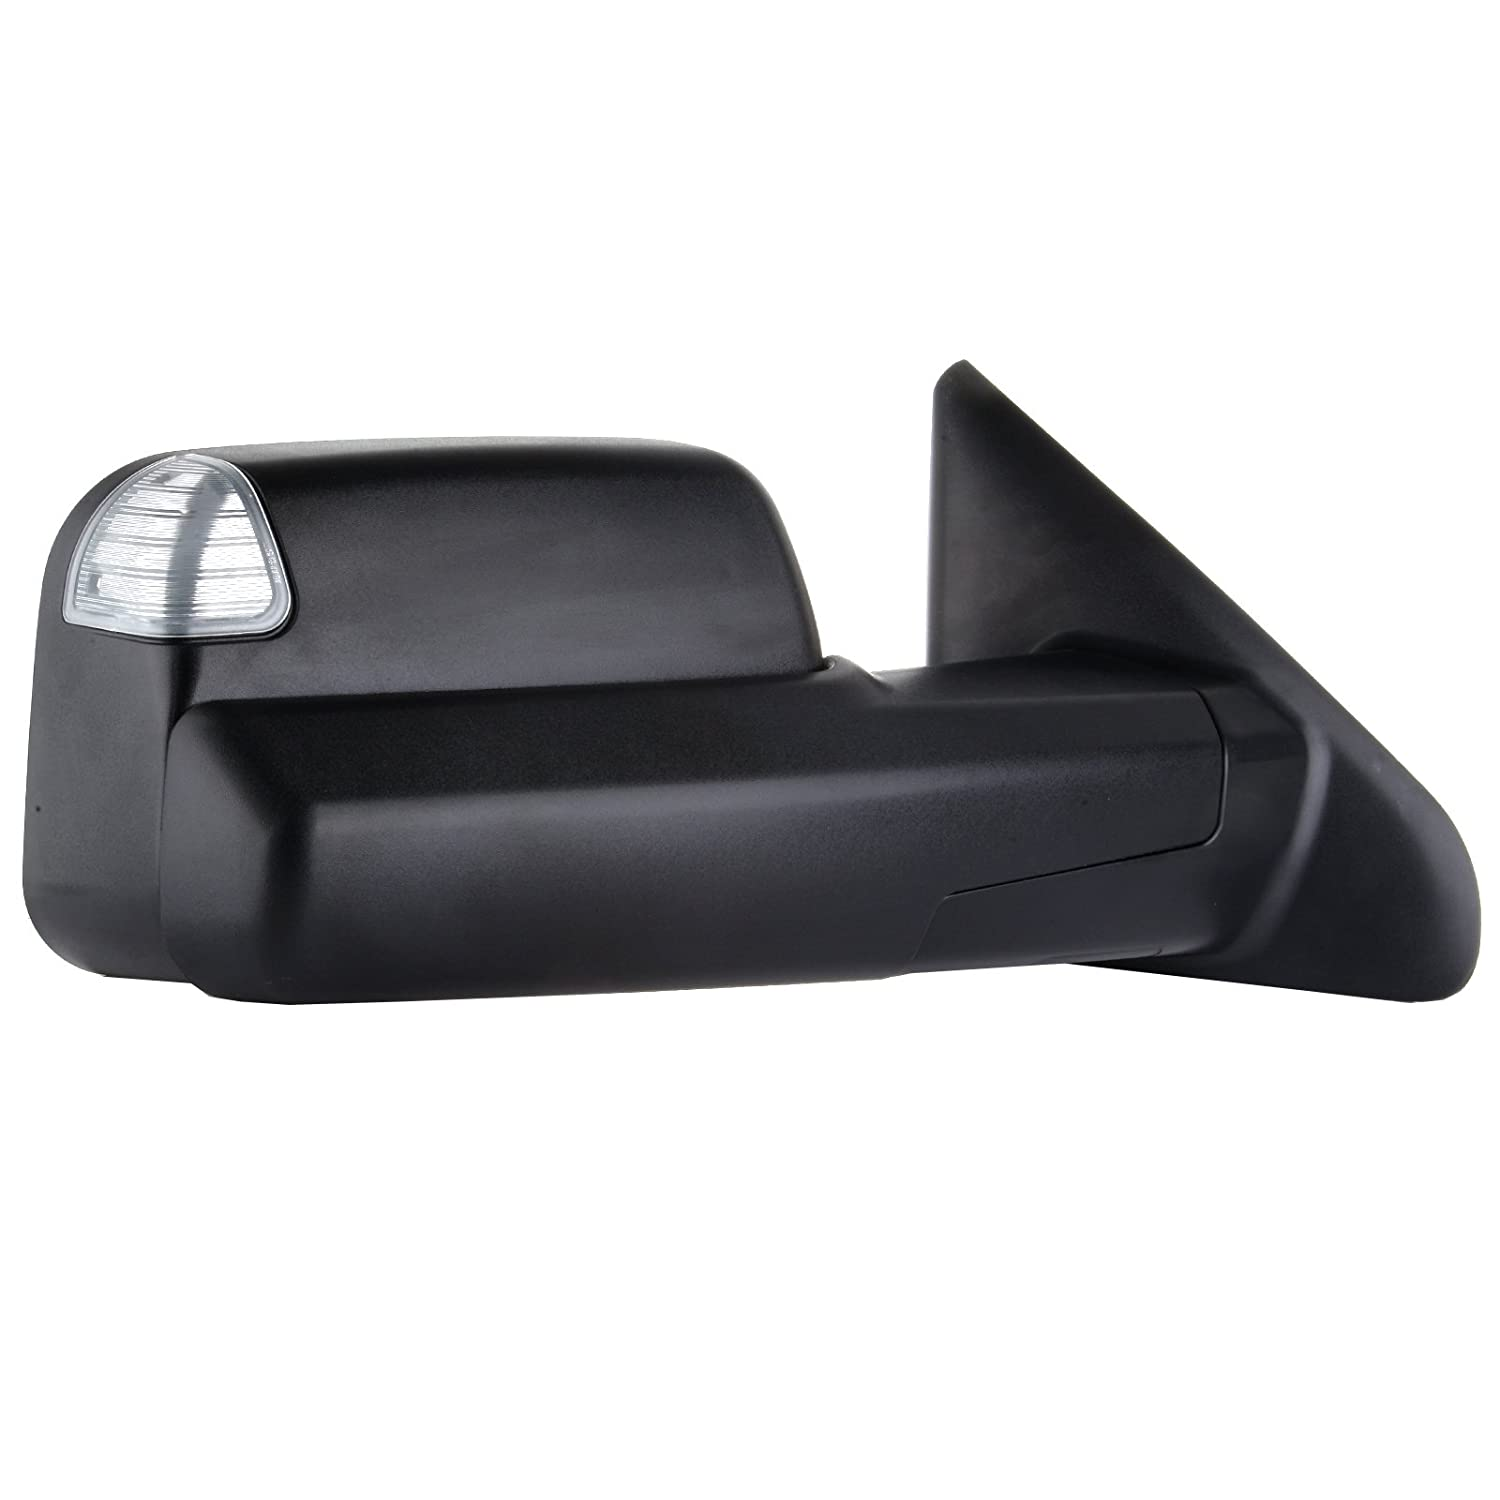 SCITOO fit Dodge Ram Towing Mirrors Black Rear View Mirrors fit 2002-2008 Dodge Ram 1500 2500 3500 Truck Larger Glass Power Control Heated Turn Signal Puddle Light Manual Flip up Folding 050727-5206-1747241